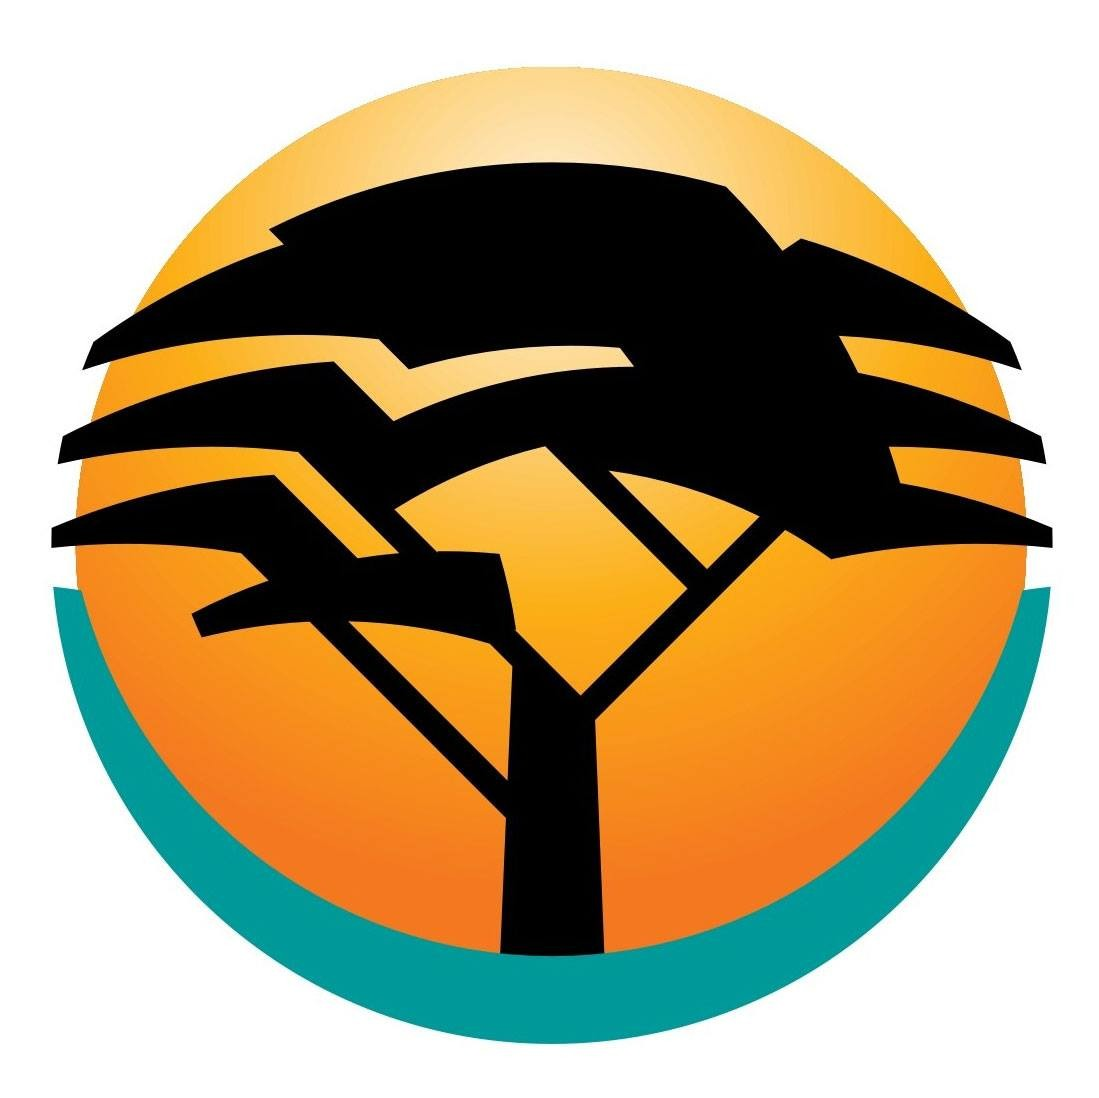 Fnb forex application form